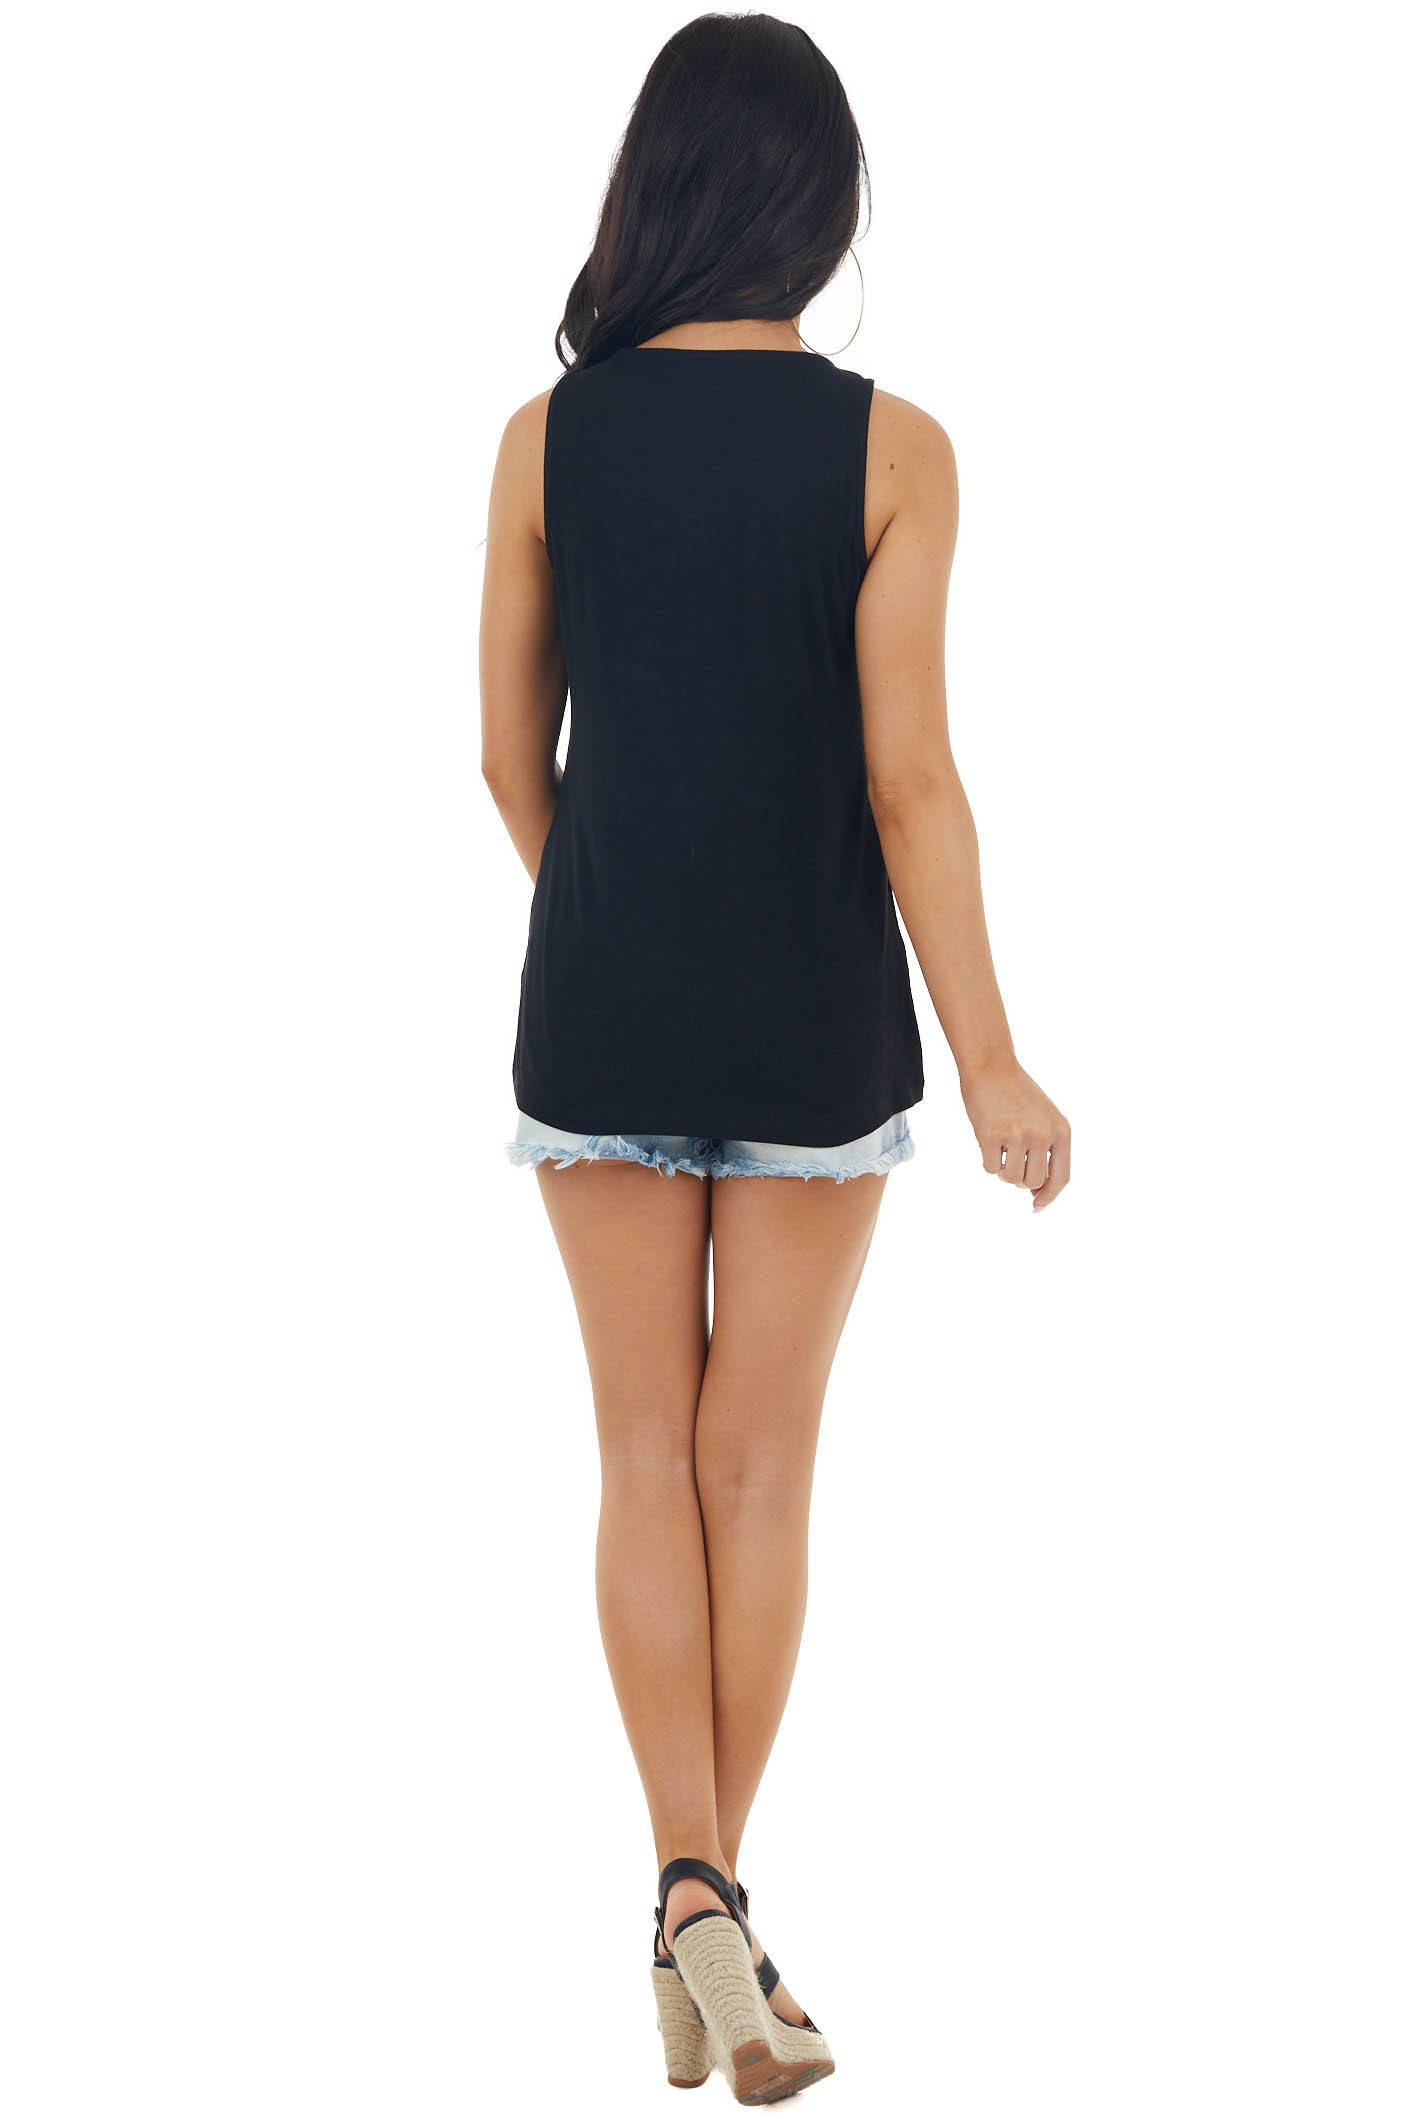 Black Ribbed Sleeveless Knit Top with Caged Neckline